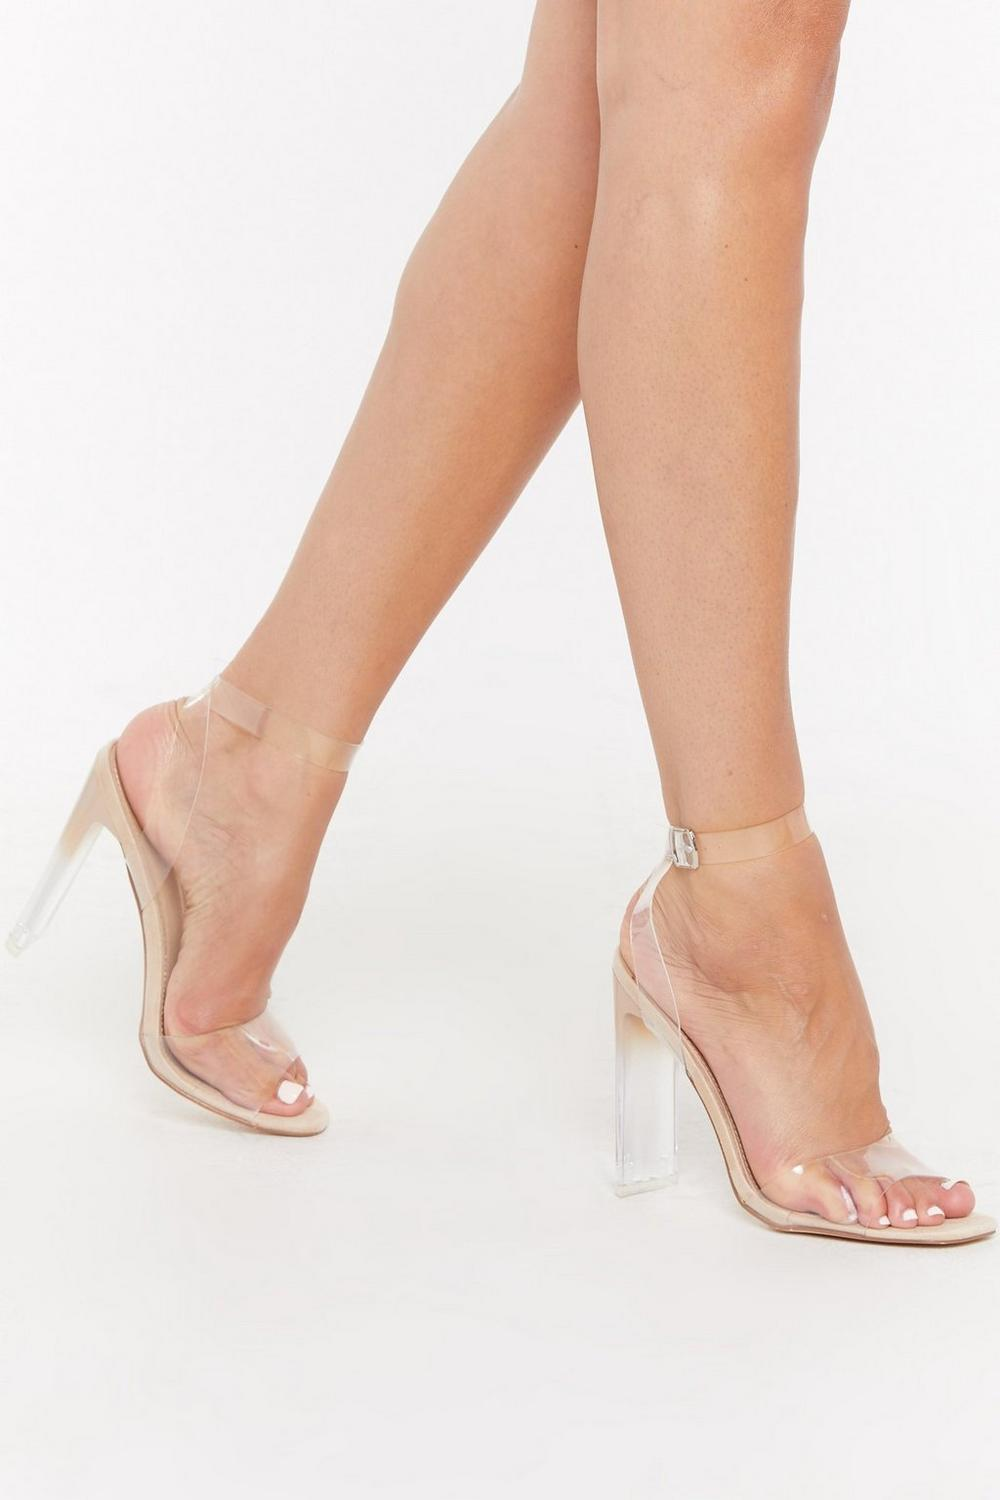 Let's Make It Clear Ombre Heels by Nasty Gal